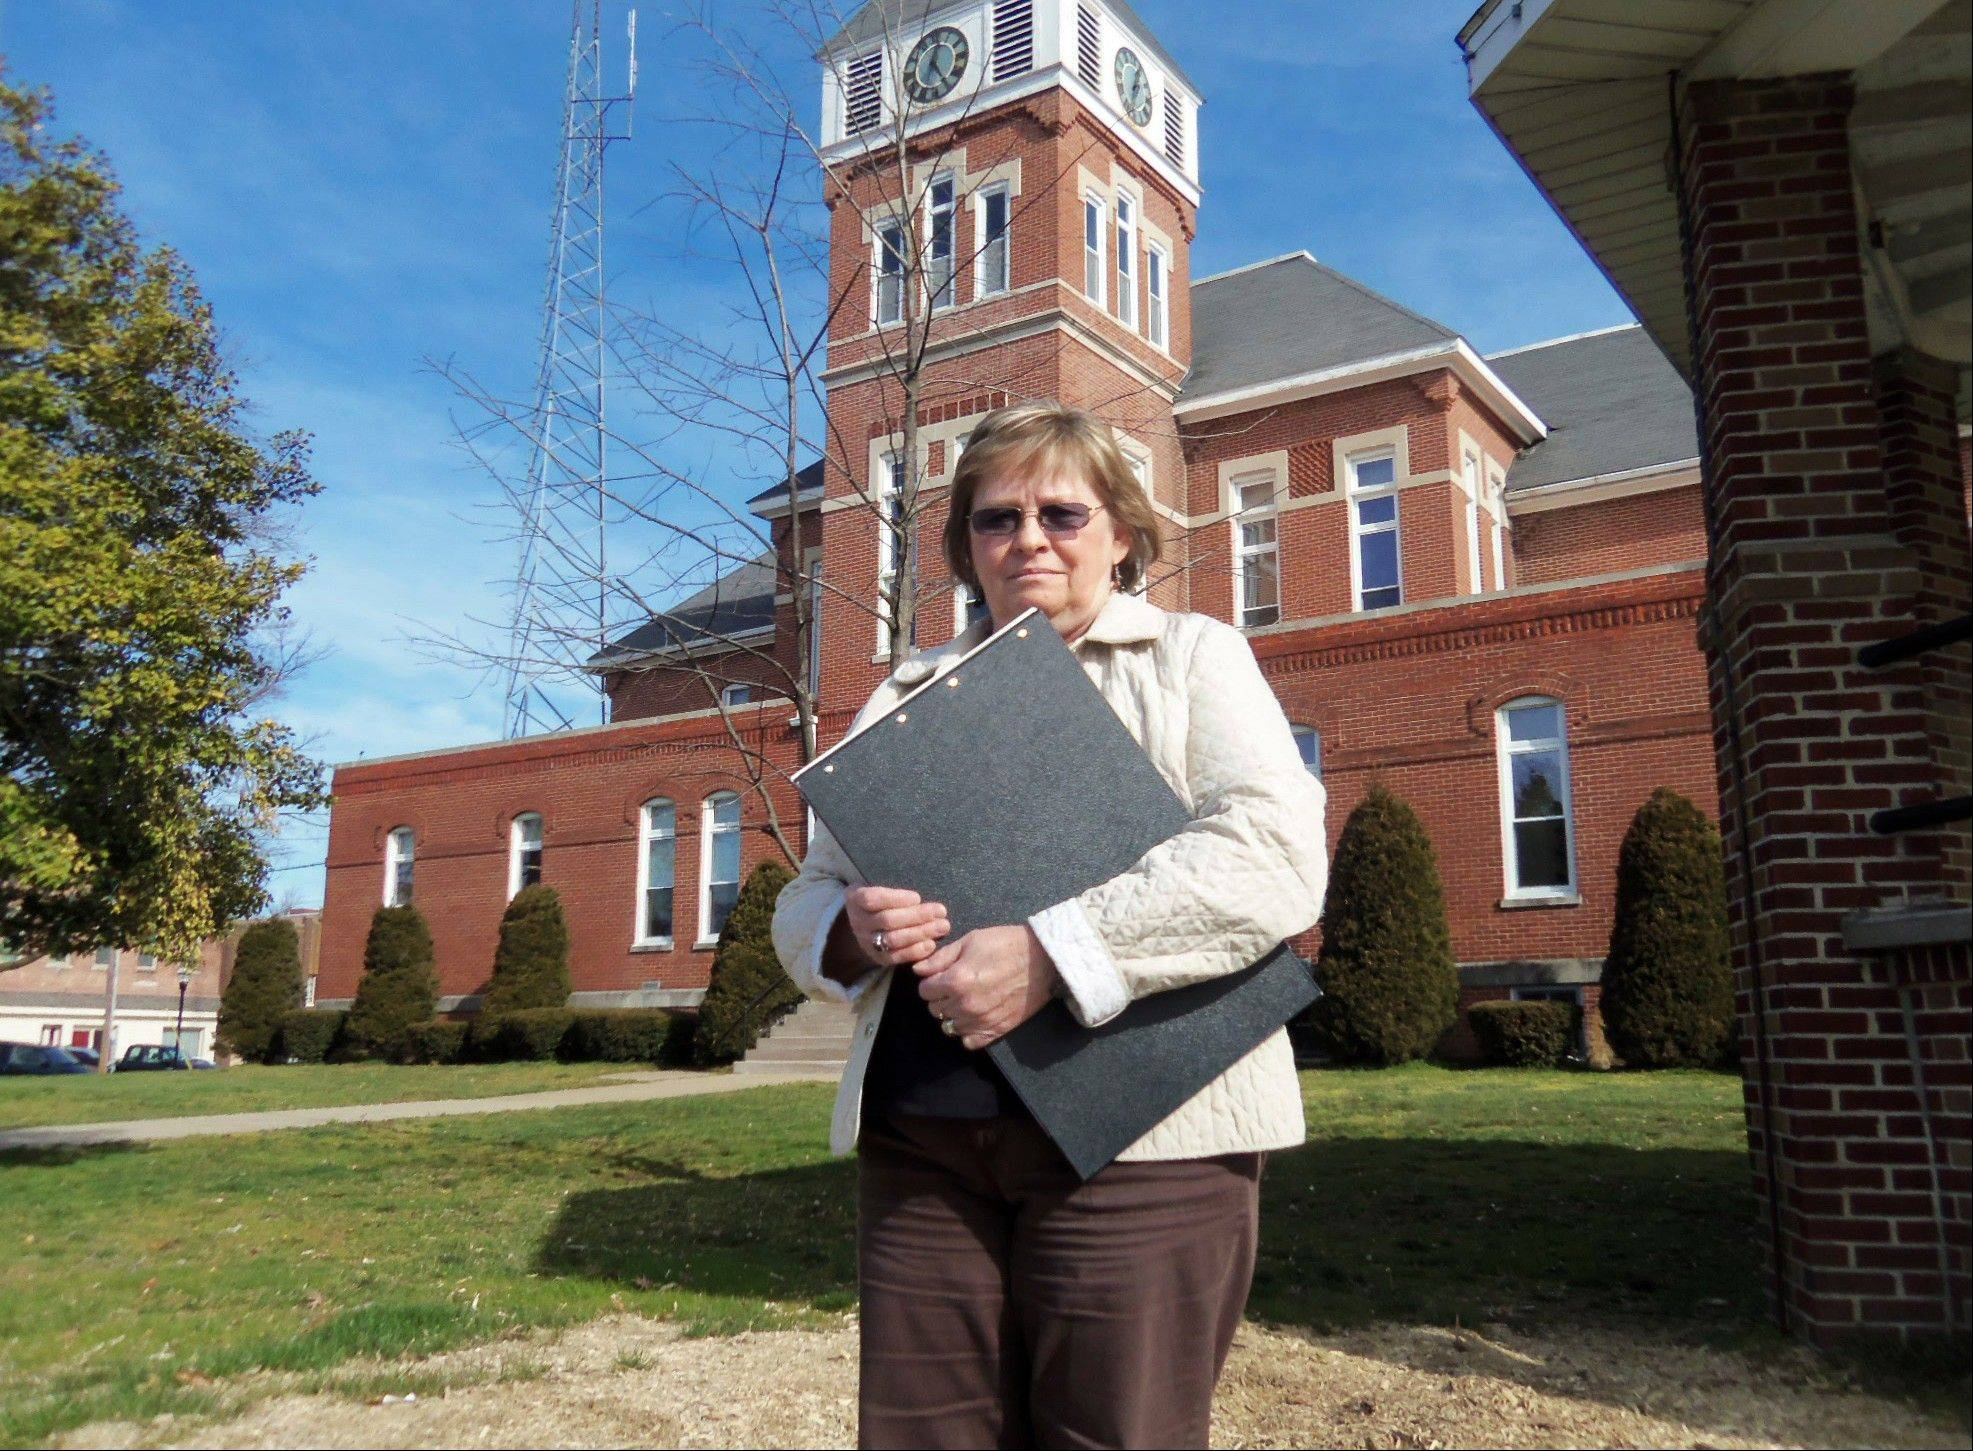 Wayne County Clerk Glenda Young stands outside the Wayne County Courthouse in Fairfield with a book of property records.